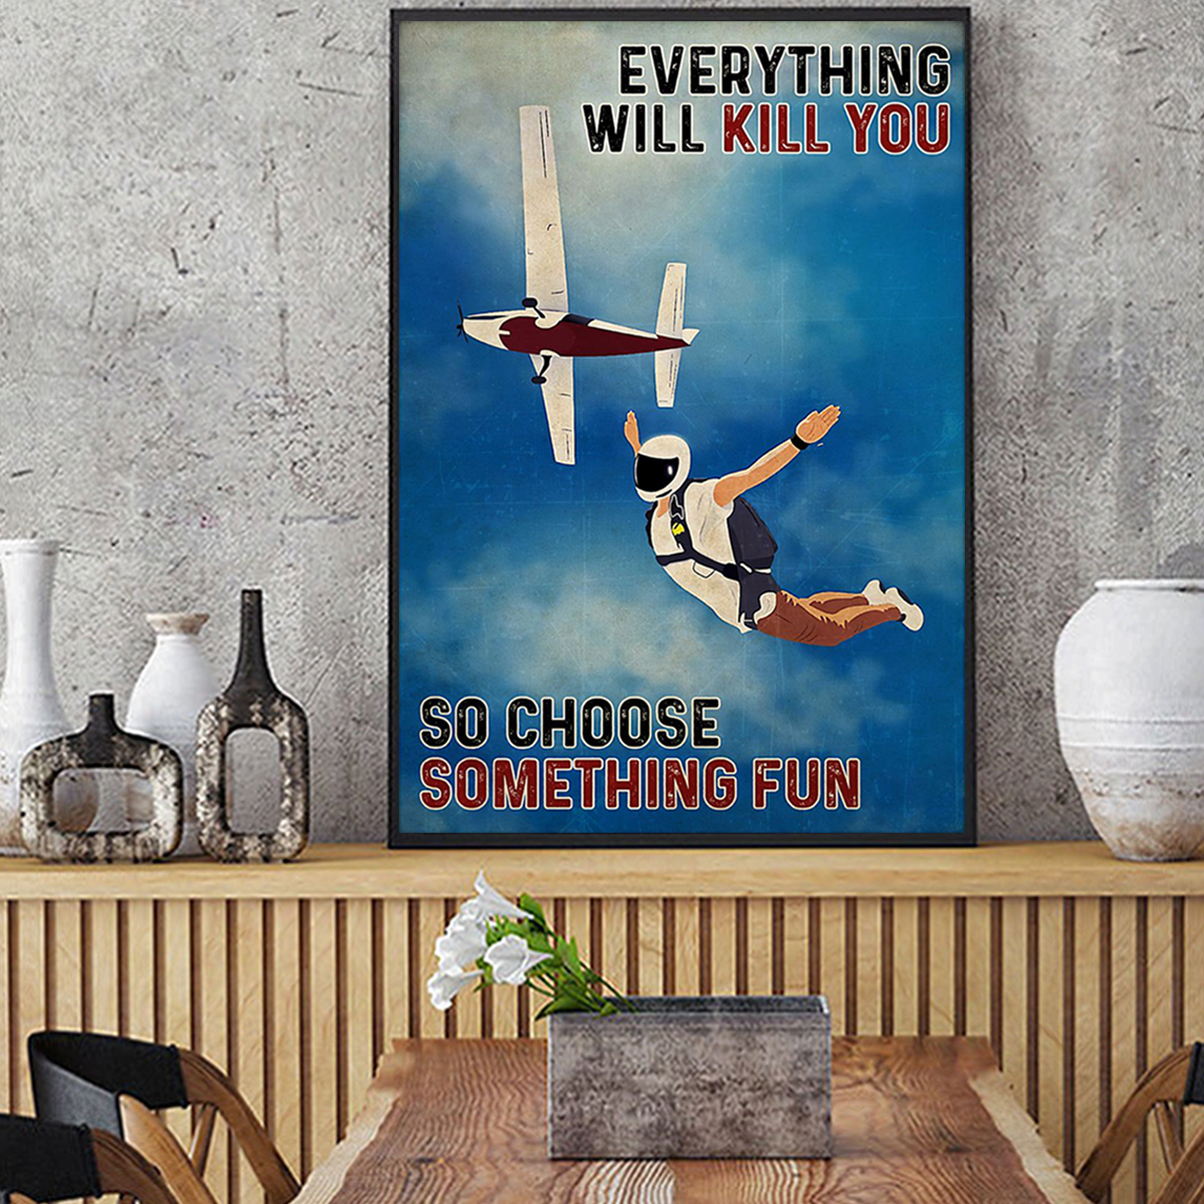 Skydiving everything everything will kill you poster A3